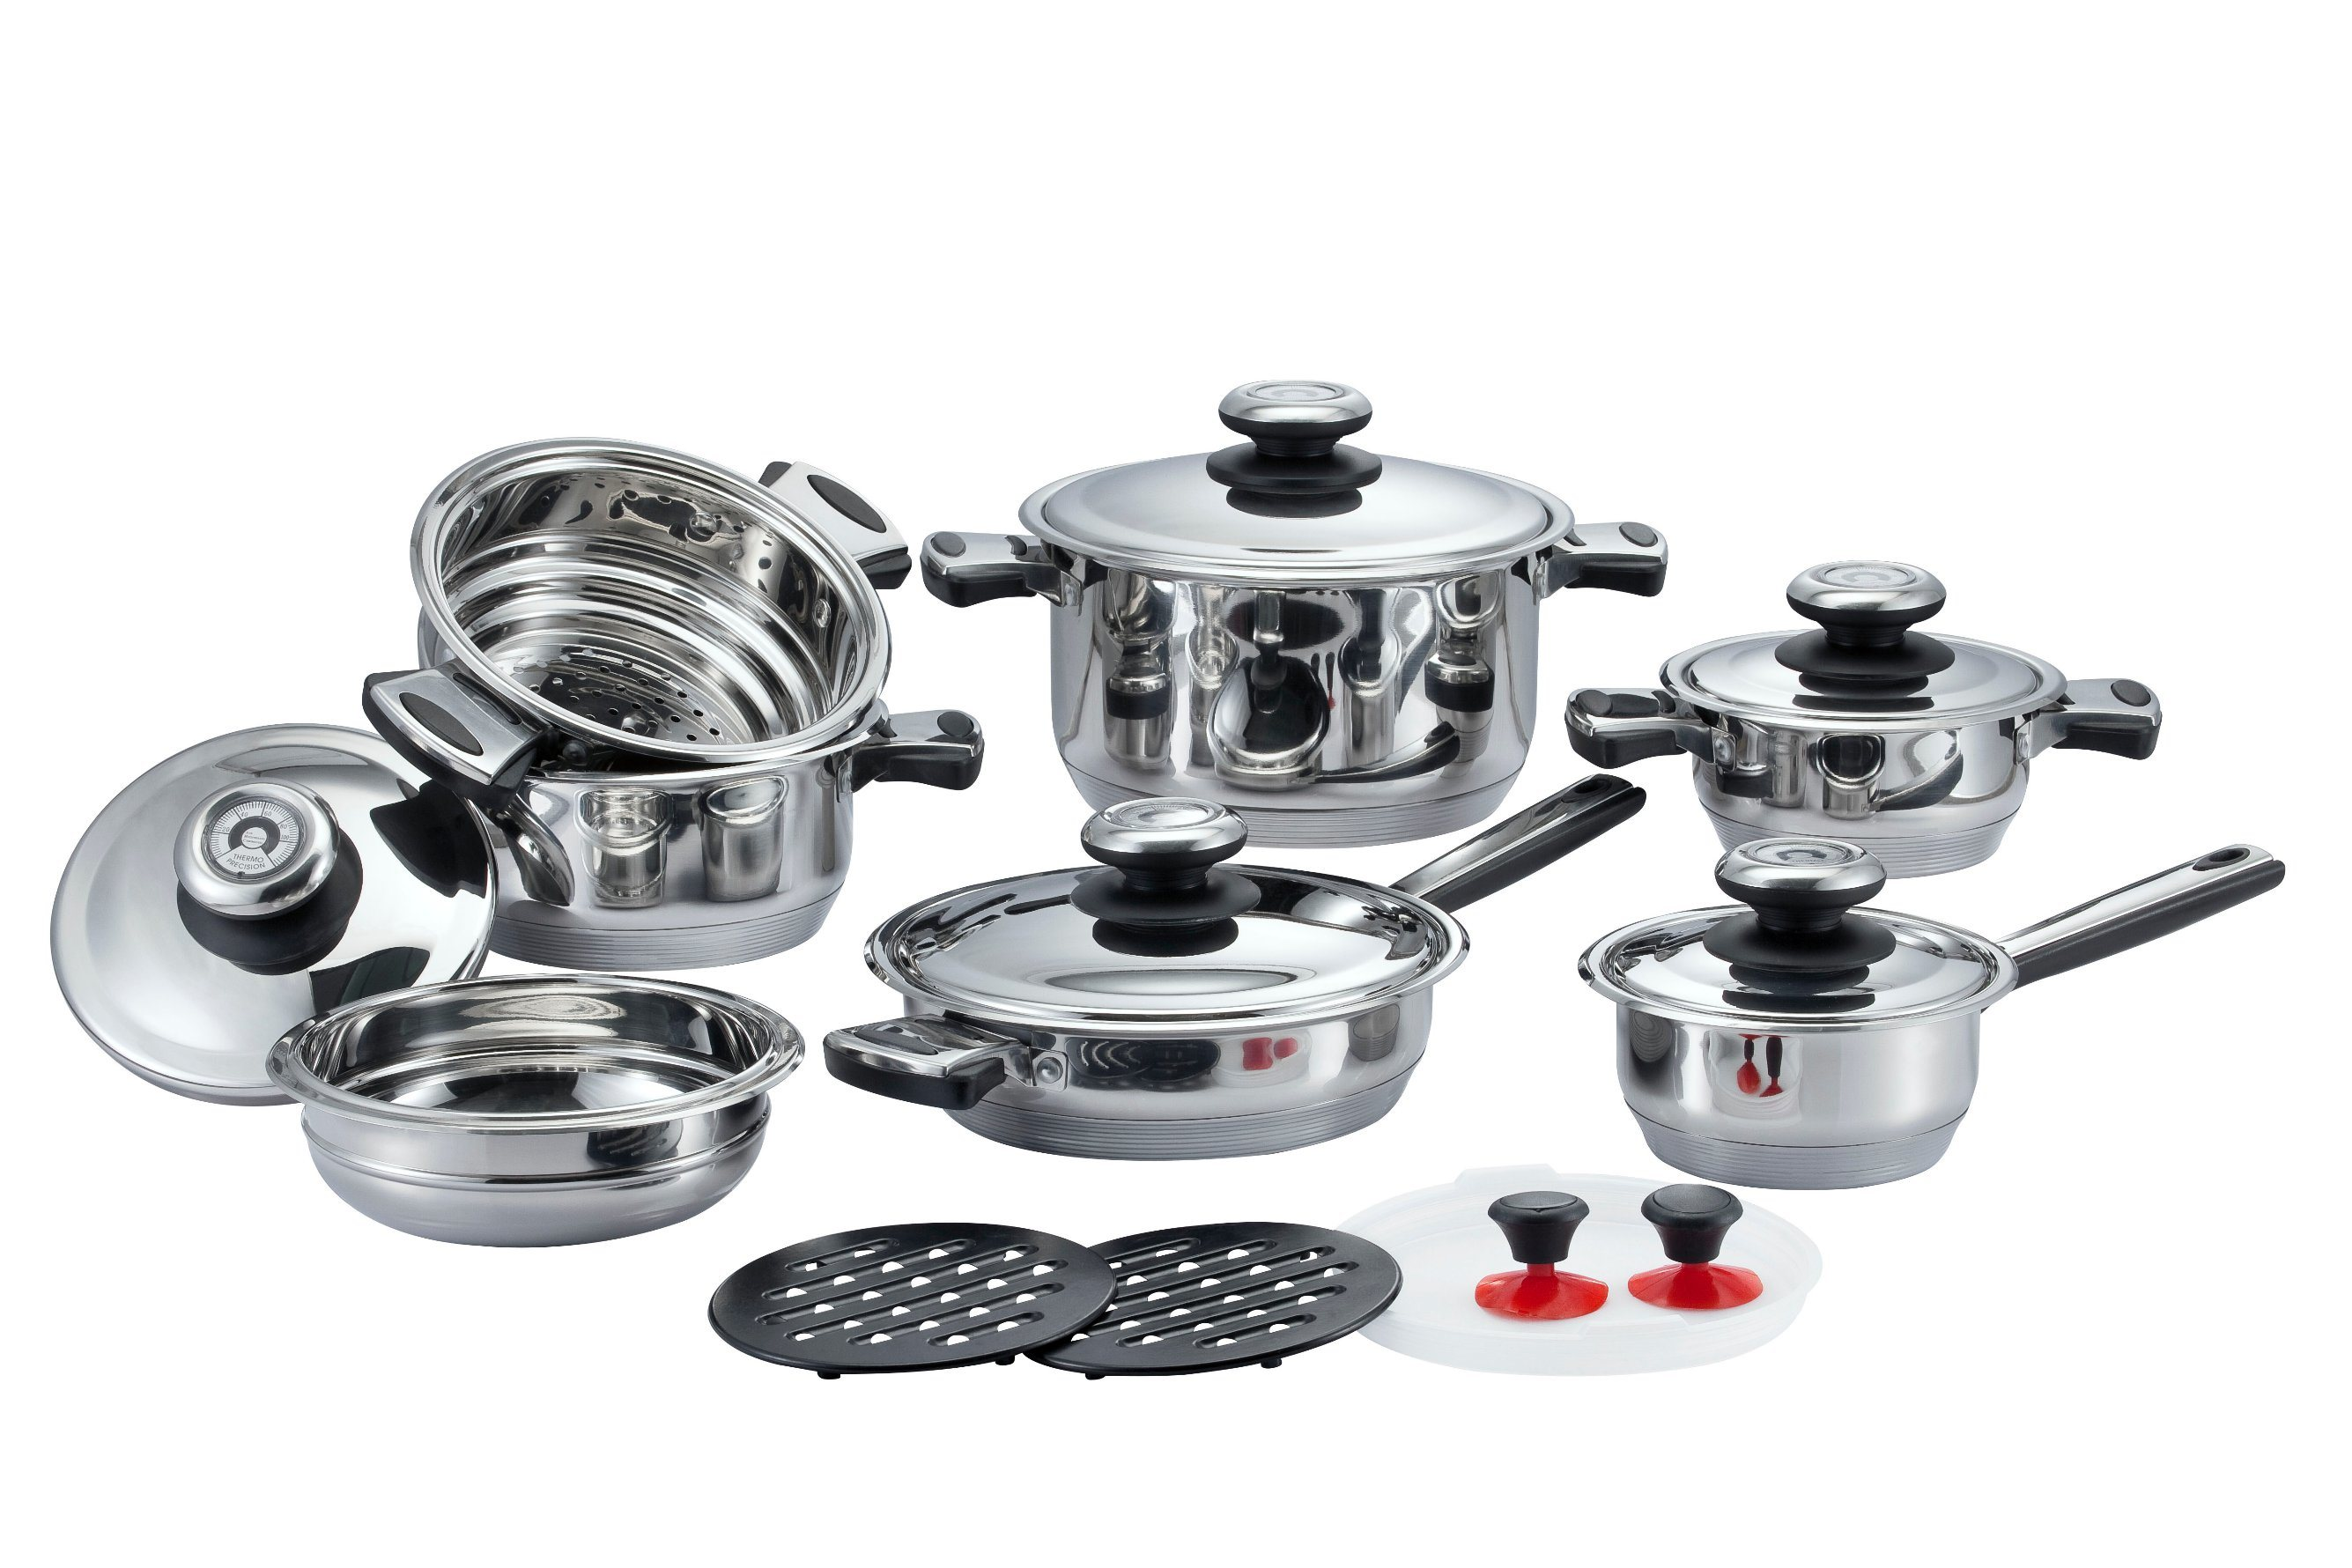 16 PCS Broad-Brimmed Cookware Set